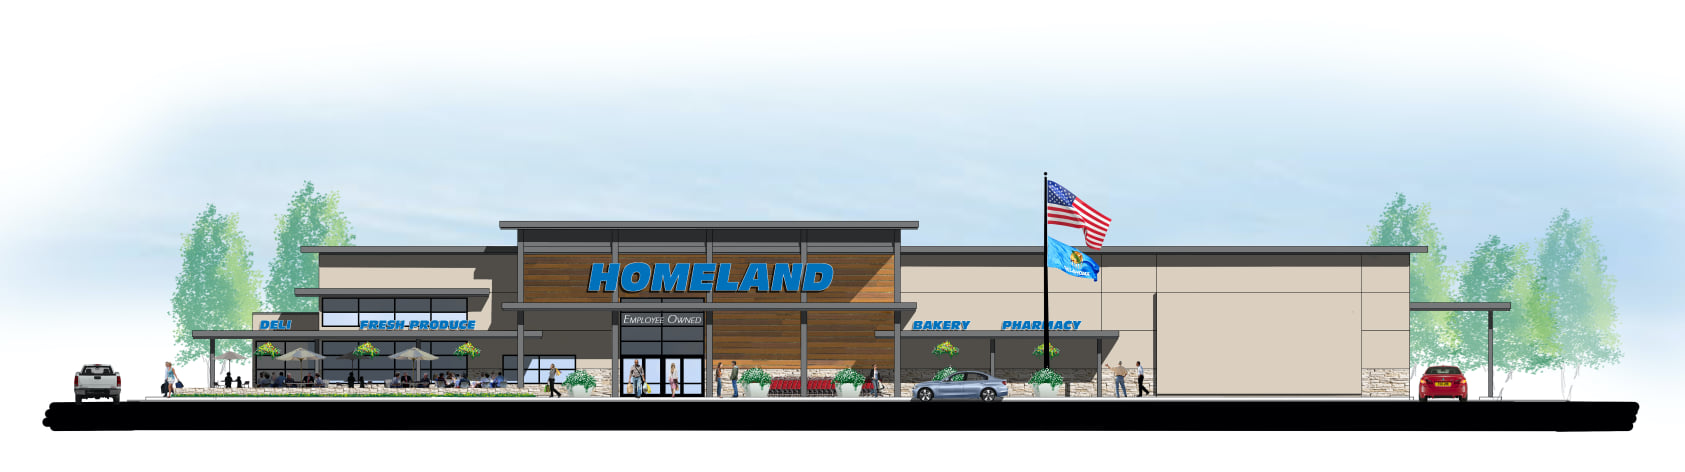 National Cooperative Bank Provides $4.2 Million for a New Homeland Grocery Store in Oklahoma City